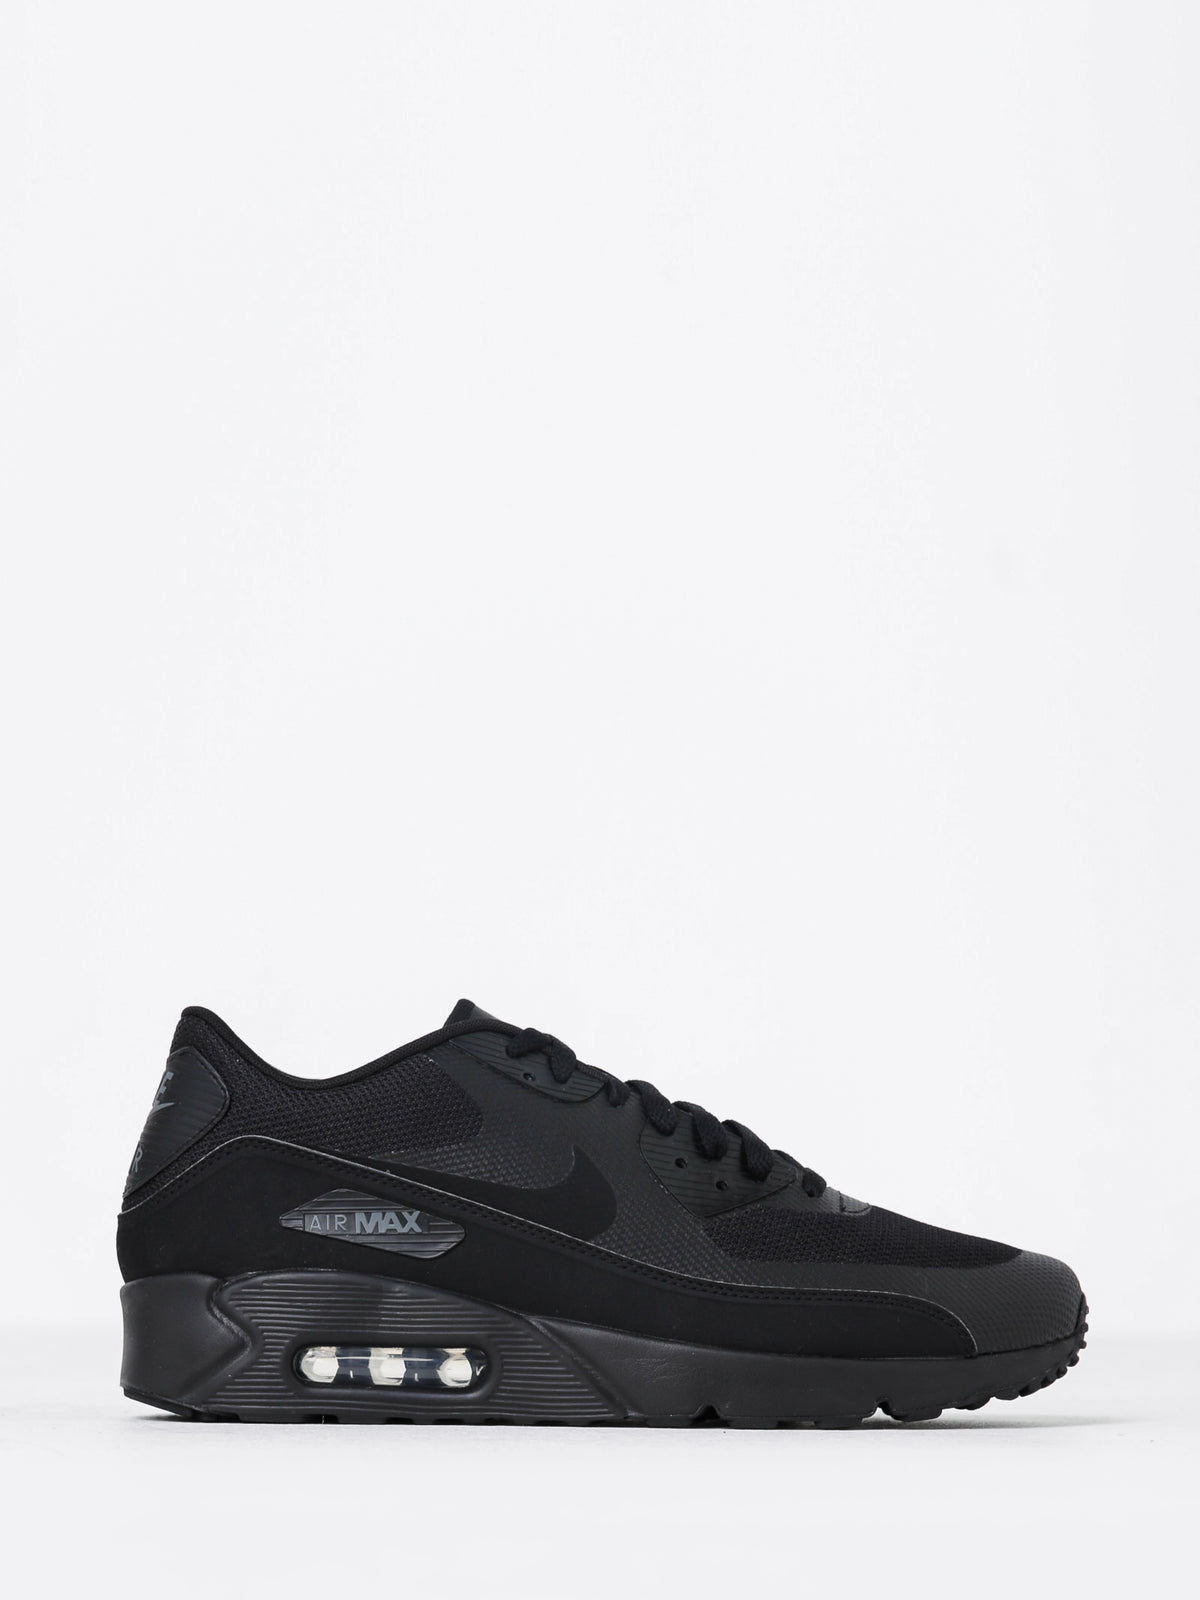 Mens Air Max 90 Ultra 2.0 Essential Sneakers in Black